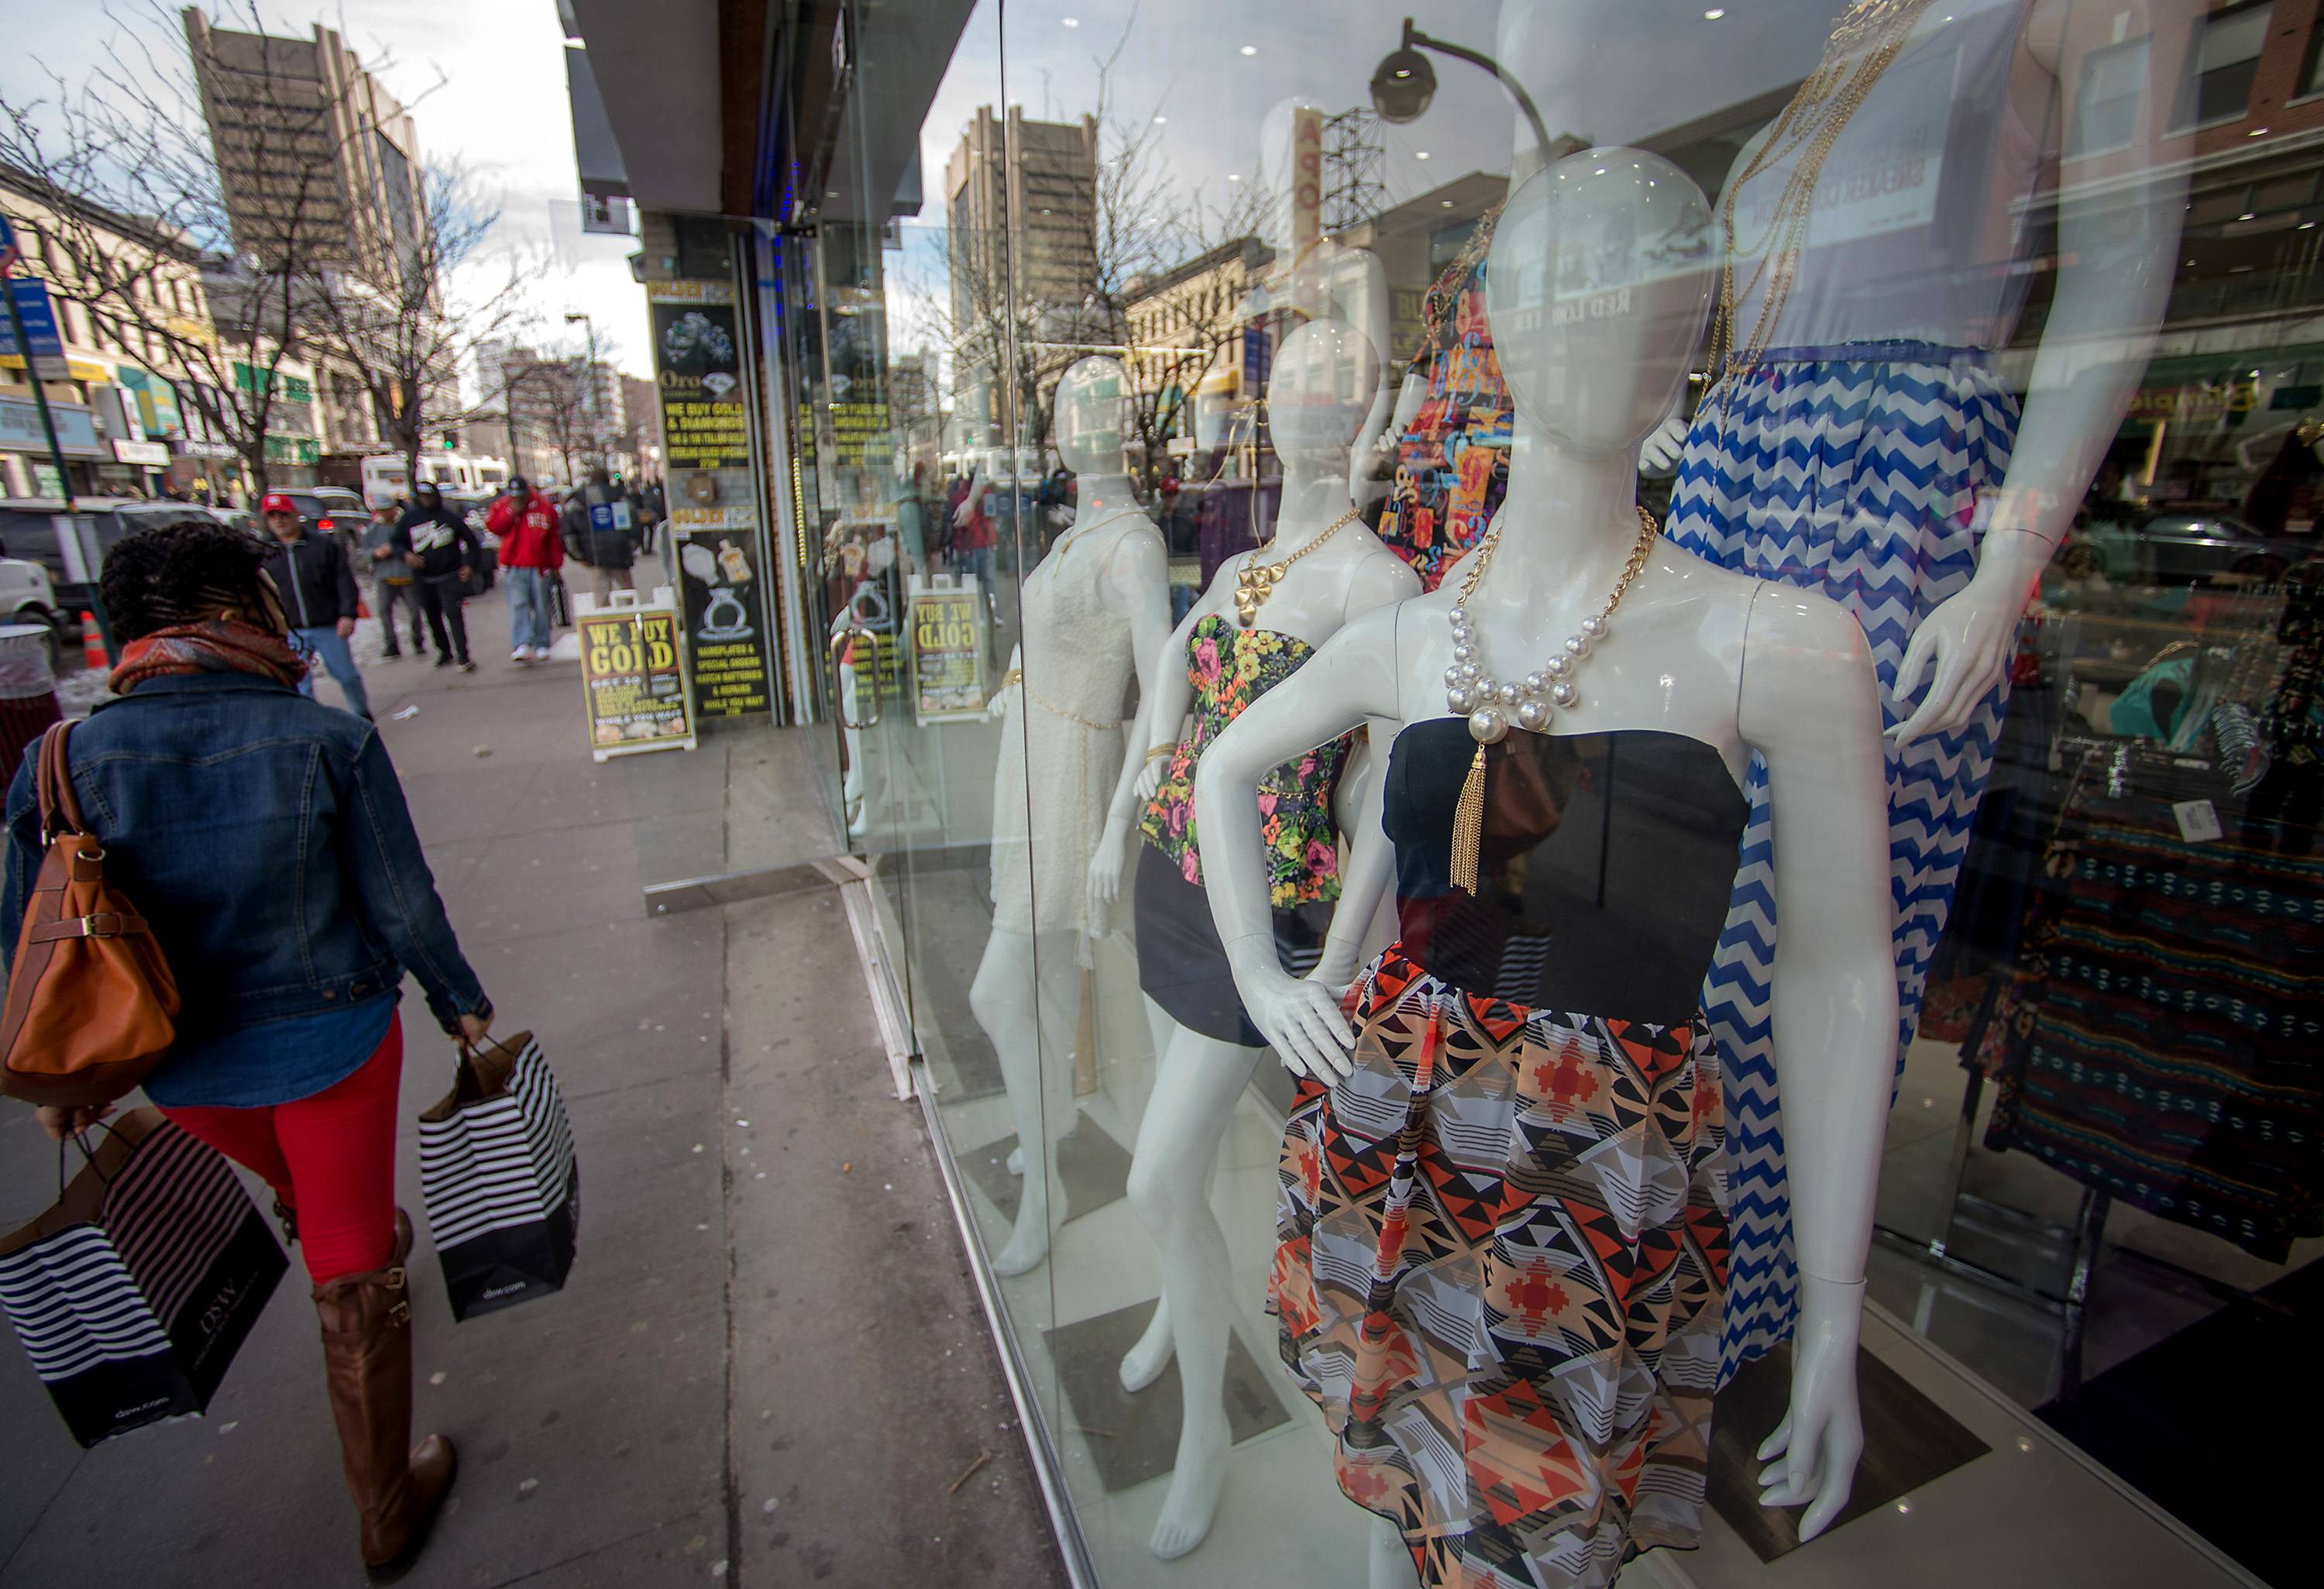 U.S. consumer confidence fell in April over concerns about hiring and business conditions, even though many people foresee a strengthening economy in the months ahead.